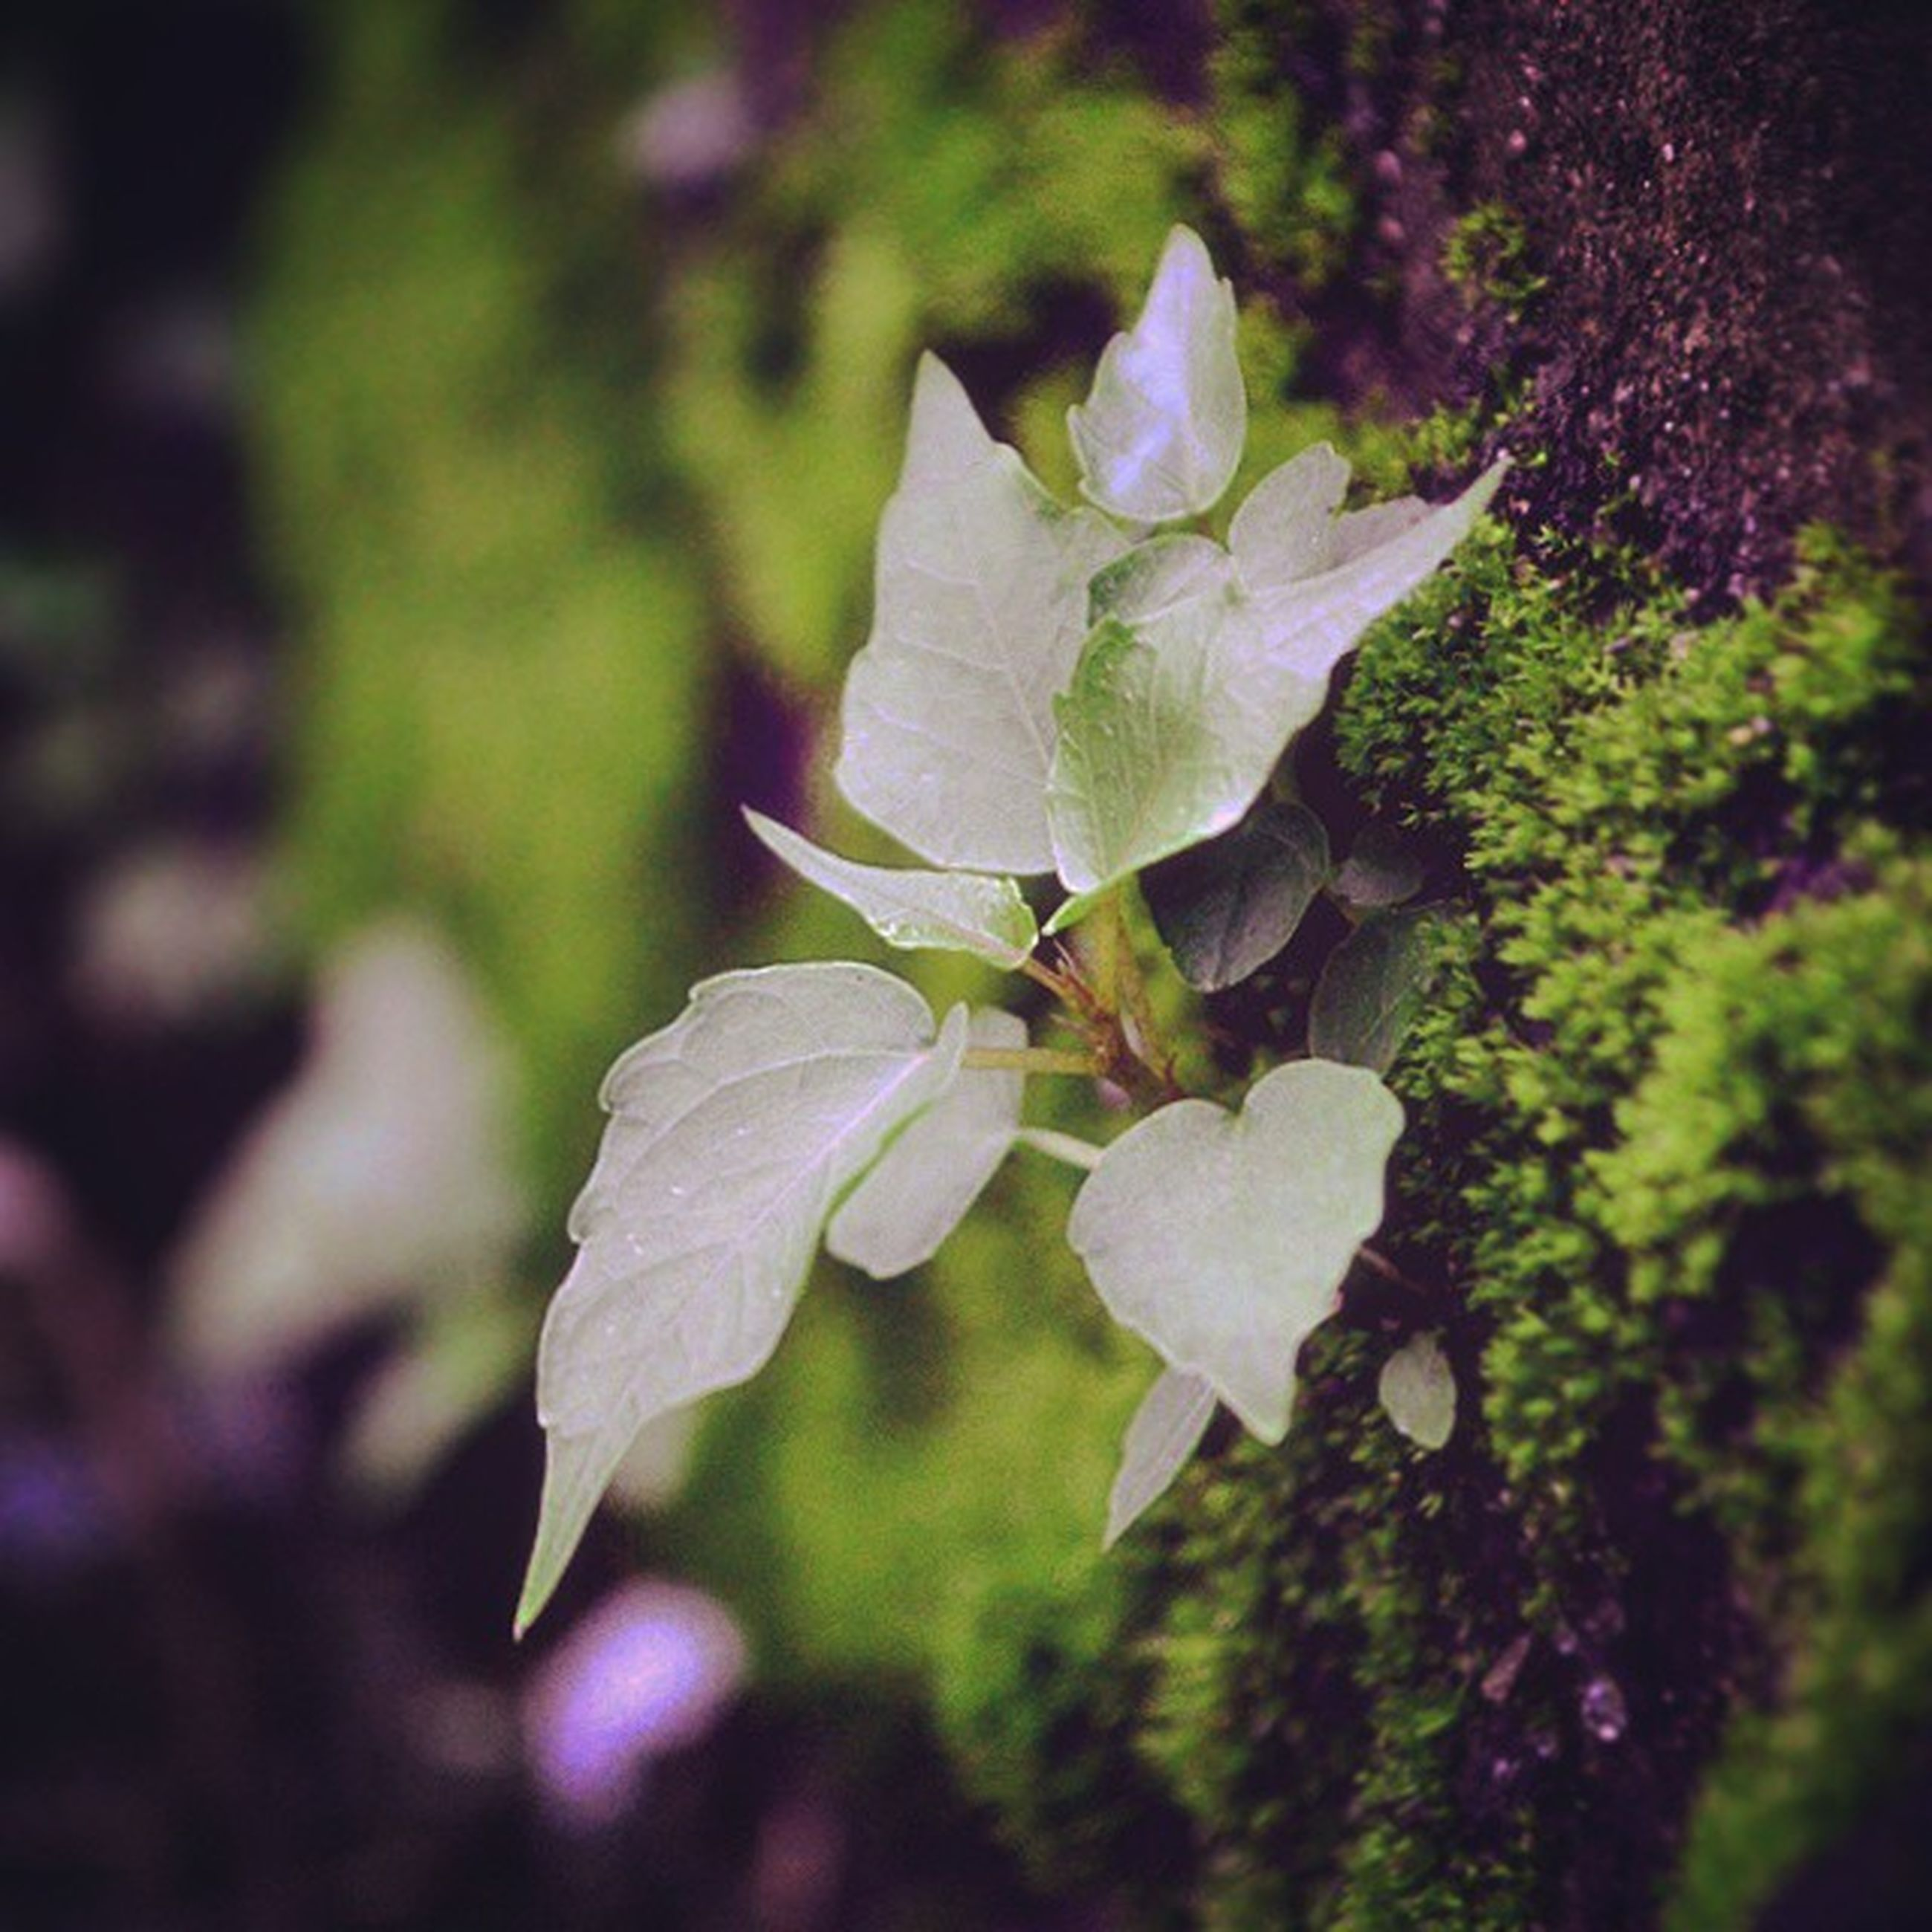 growth, flower, leaf, freshness, beauty in nature, plant, nature, fragility, close-up, focus on foreground, green color, petal, selective focus, blooming, outdoors, park - man made space, tree, day, no people, in bloom